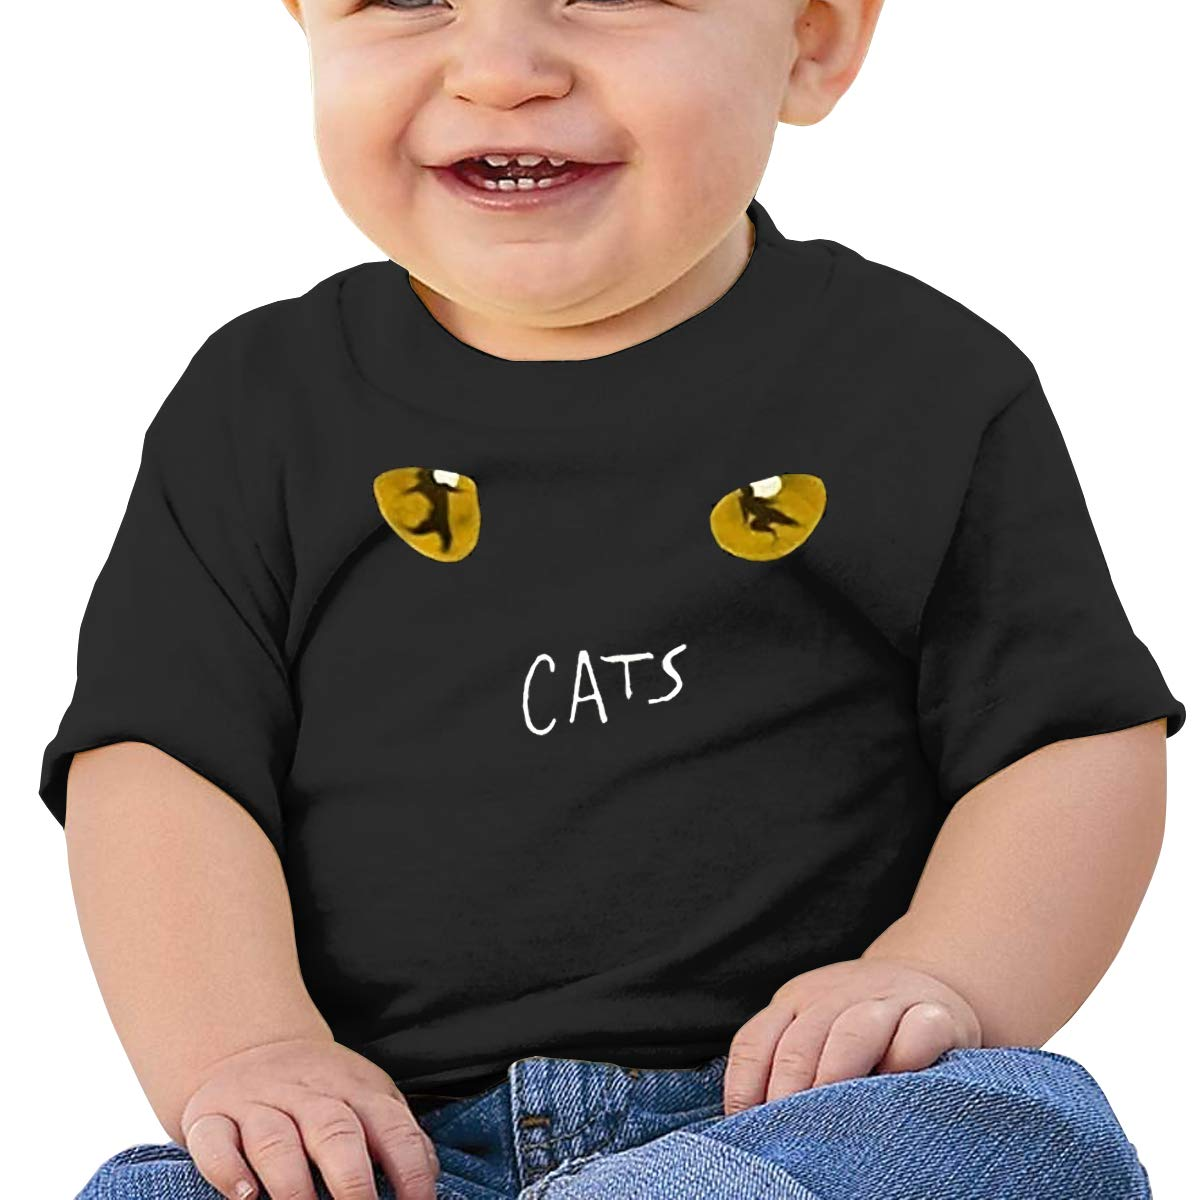 Cats Baby T-Shirt Toddler//Infant Cotton T Shirts Short Sleeve Graphic T-Shirt for 6M-2T Baby